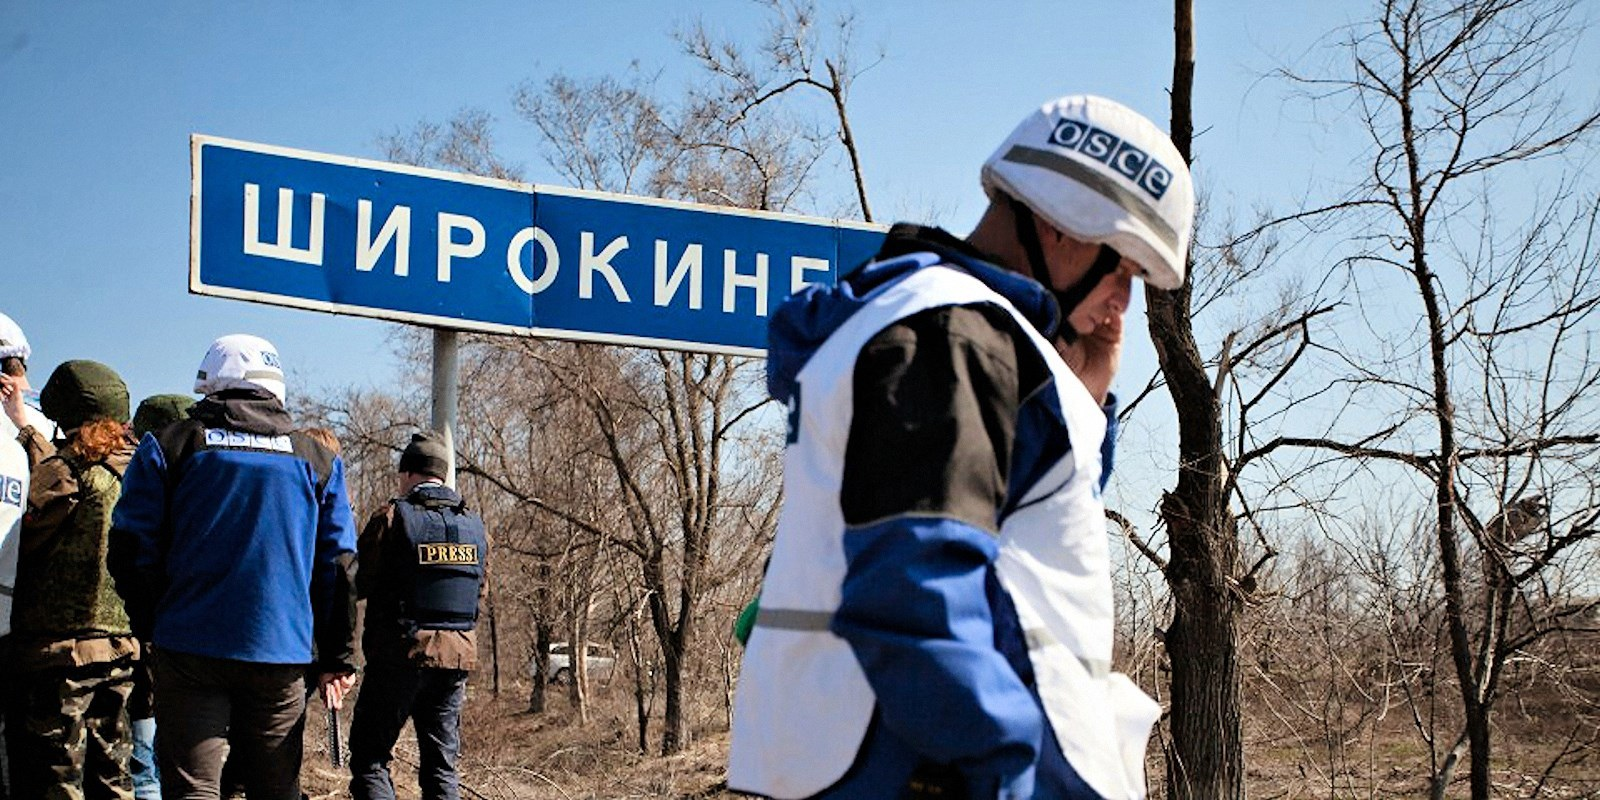 Rest in Donetsk - the Great Anadol forest: a selection of sites